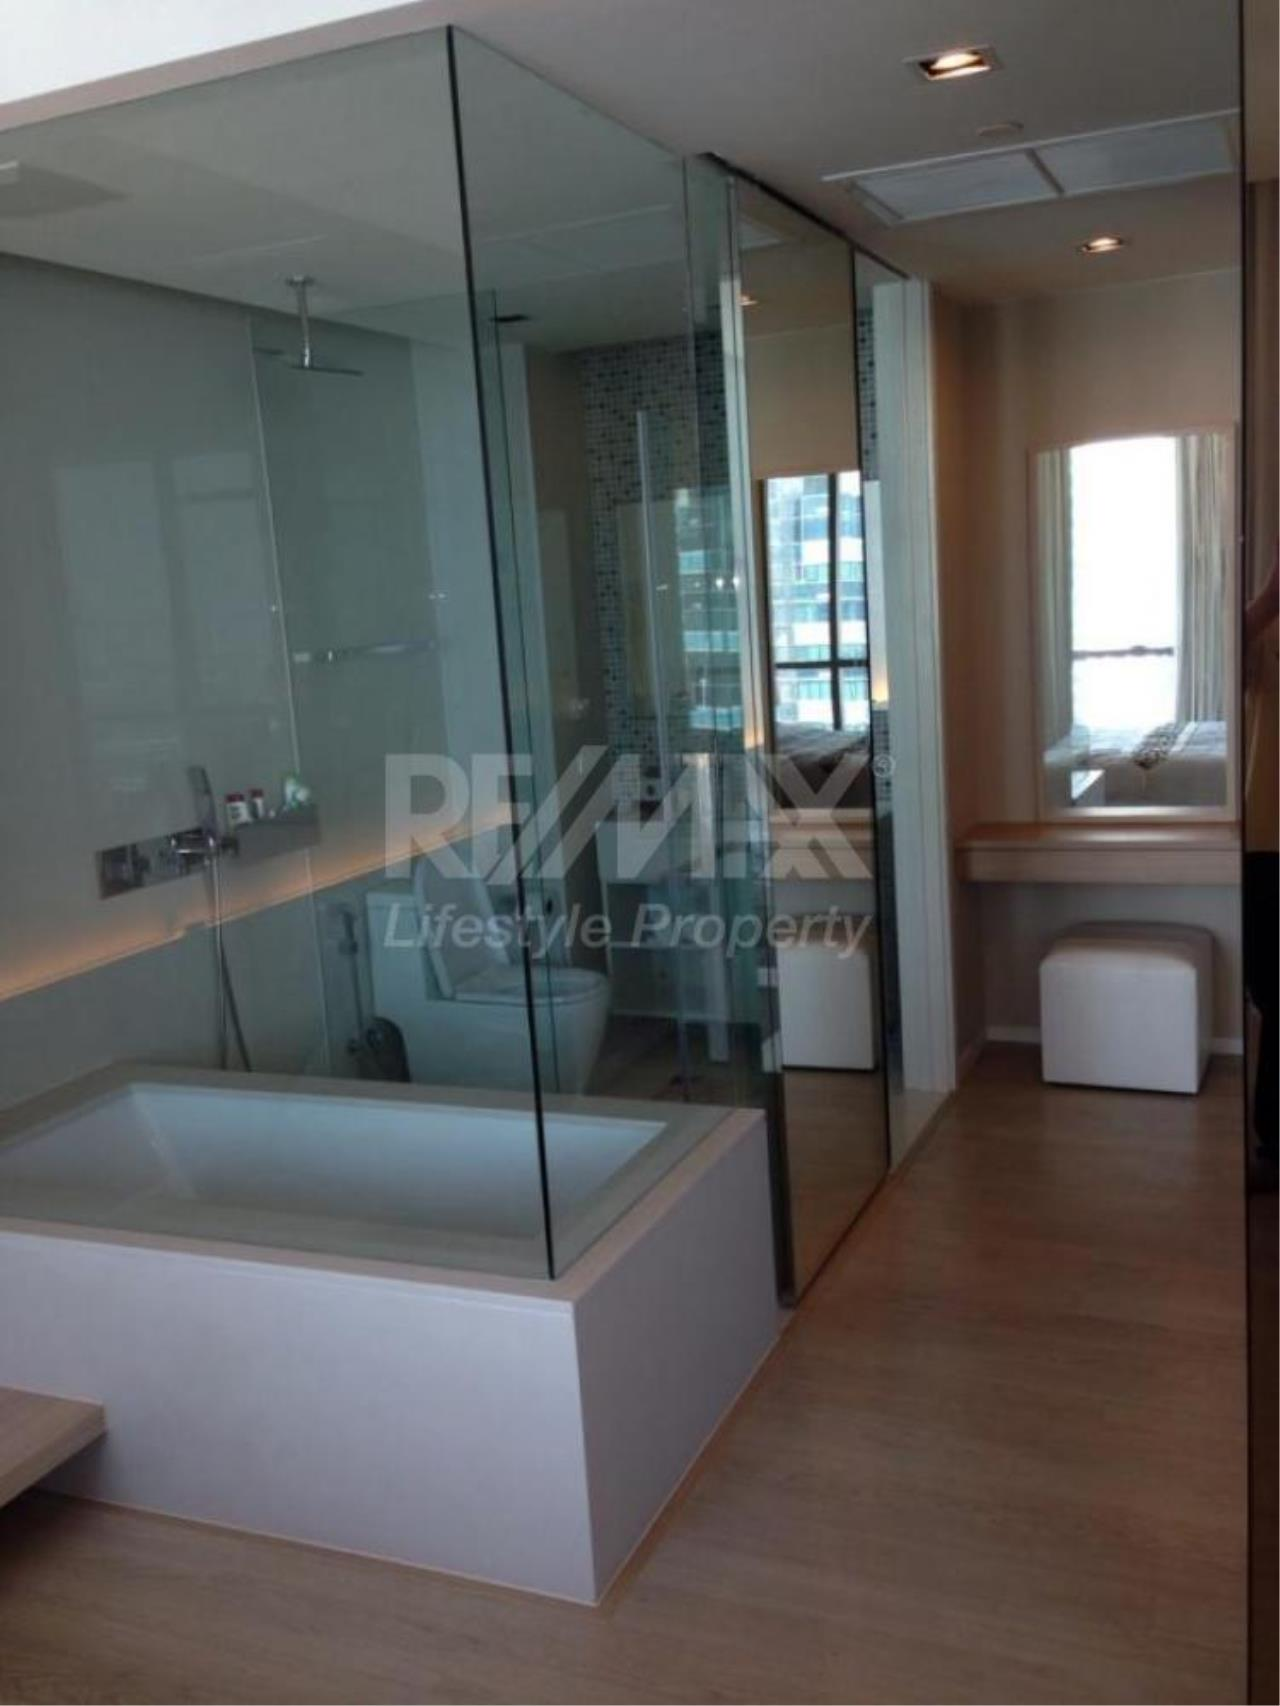 RE/MAX LifeStyle Property Agency's The Room Sukhumvit 21 6